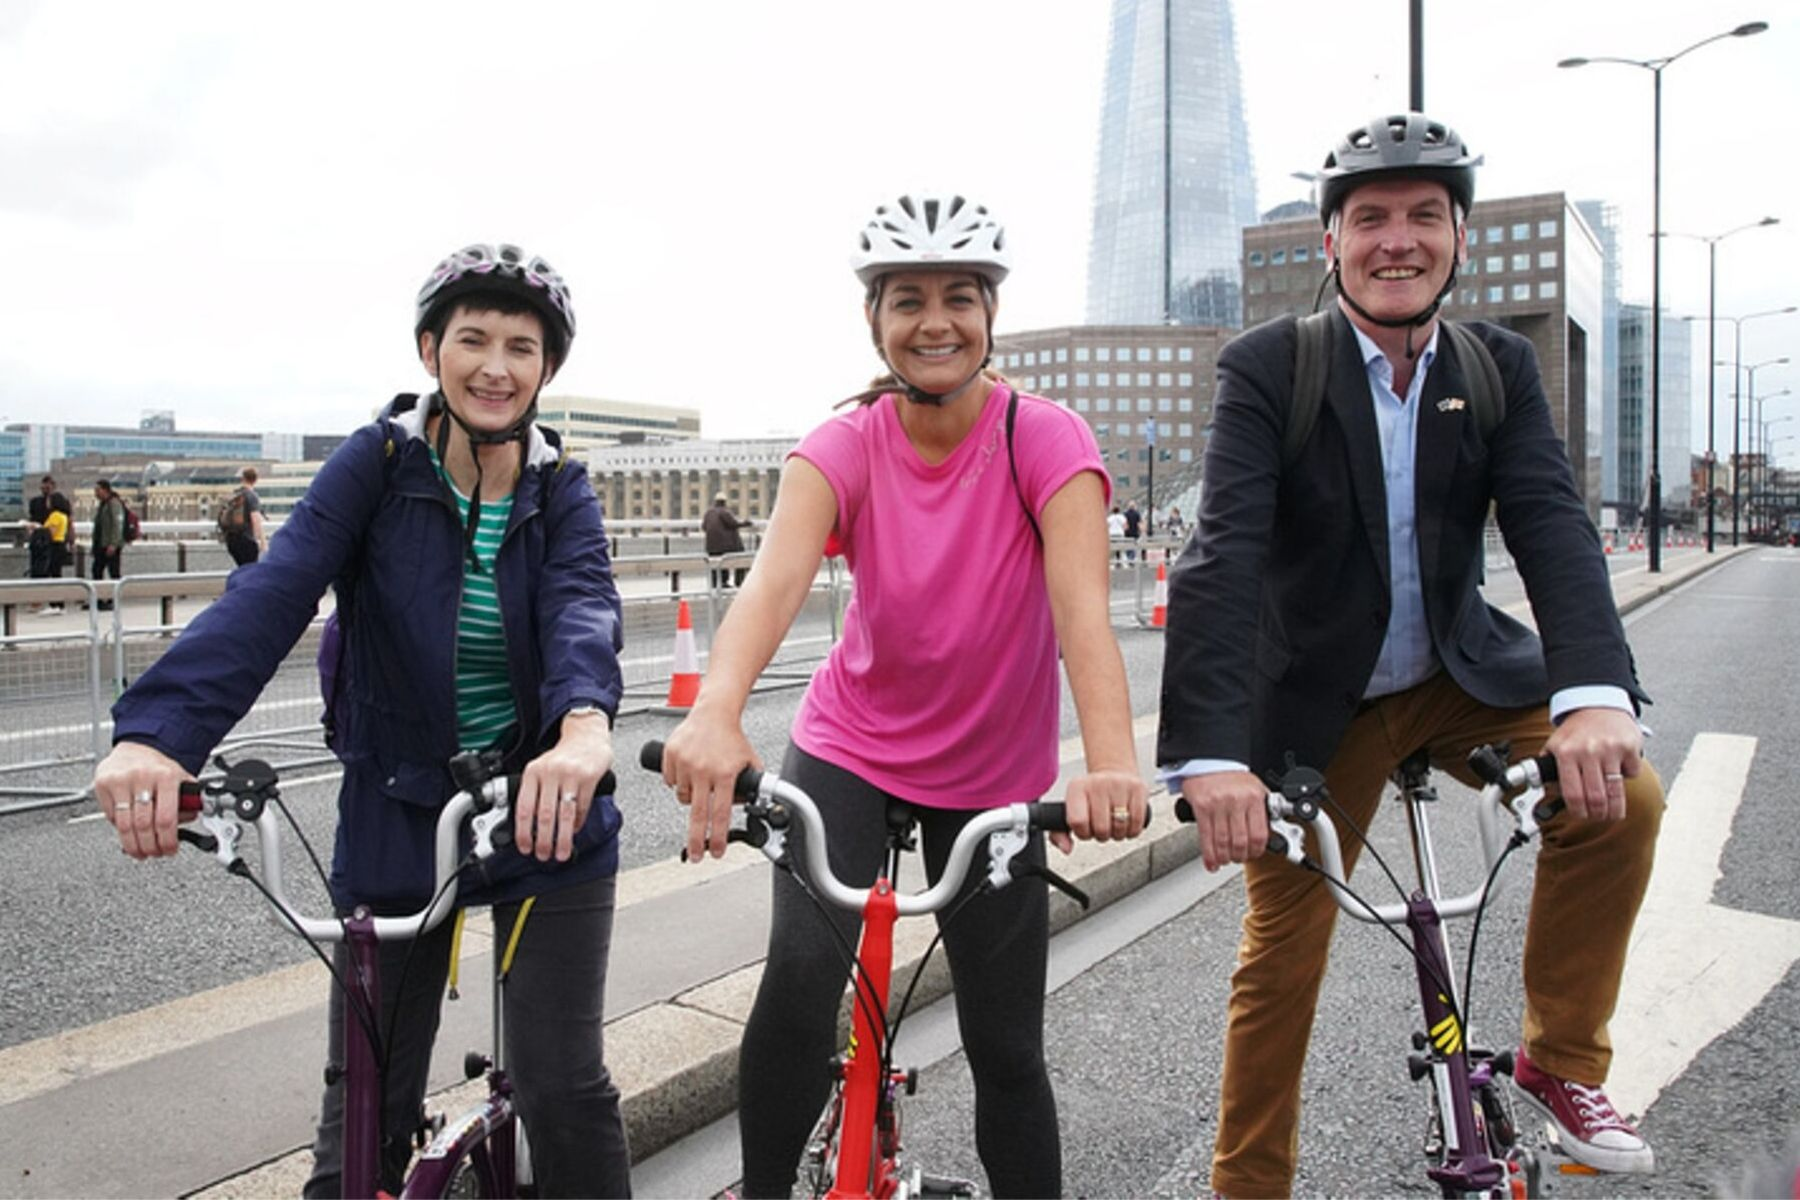 Siobhan Benita pledges more car-free days as Mayor of London